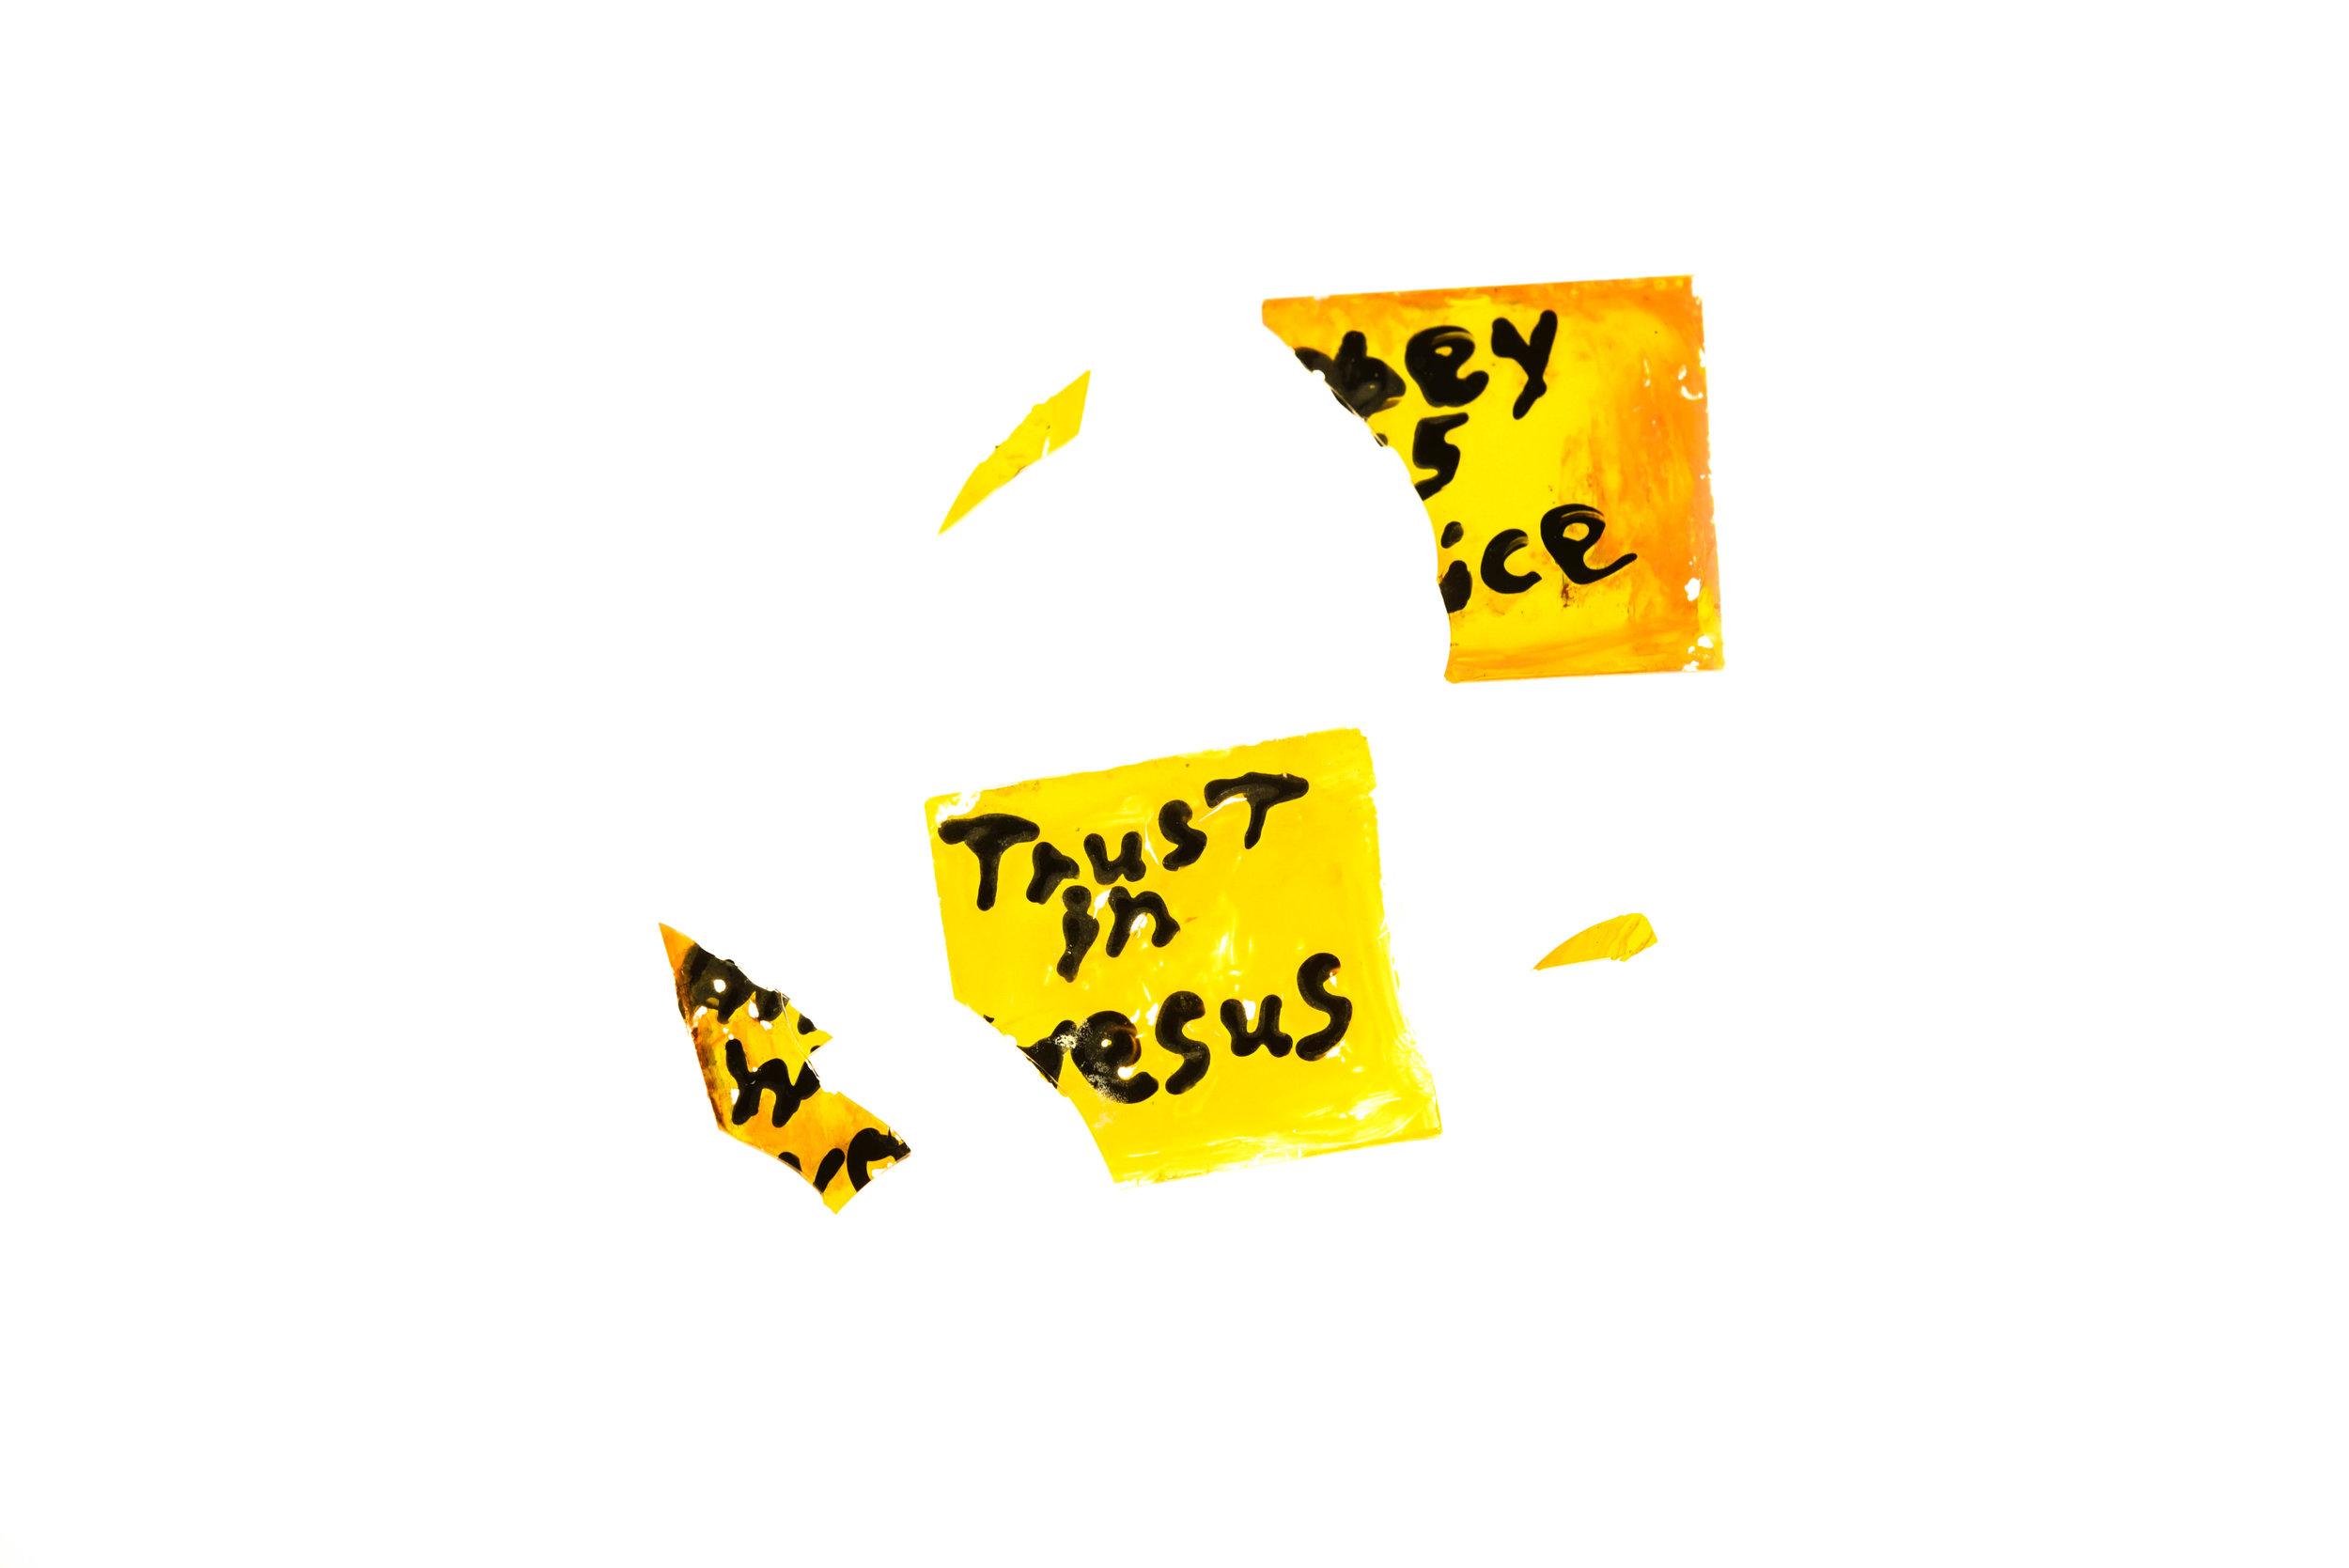 Obey His Voice & Trust in Jesus. 2016. Digital Image.